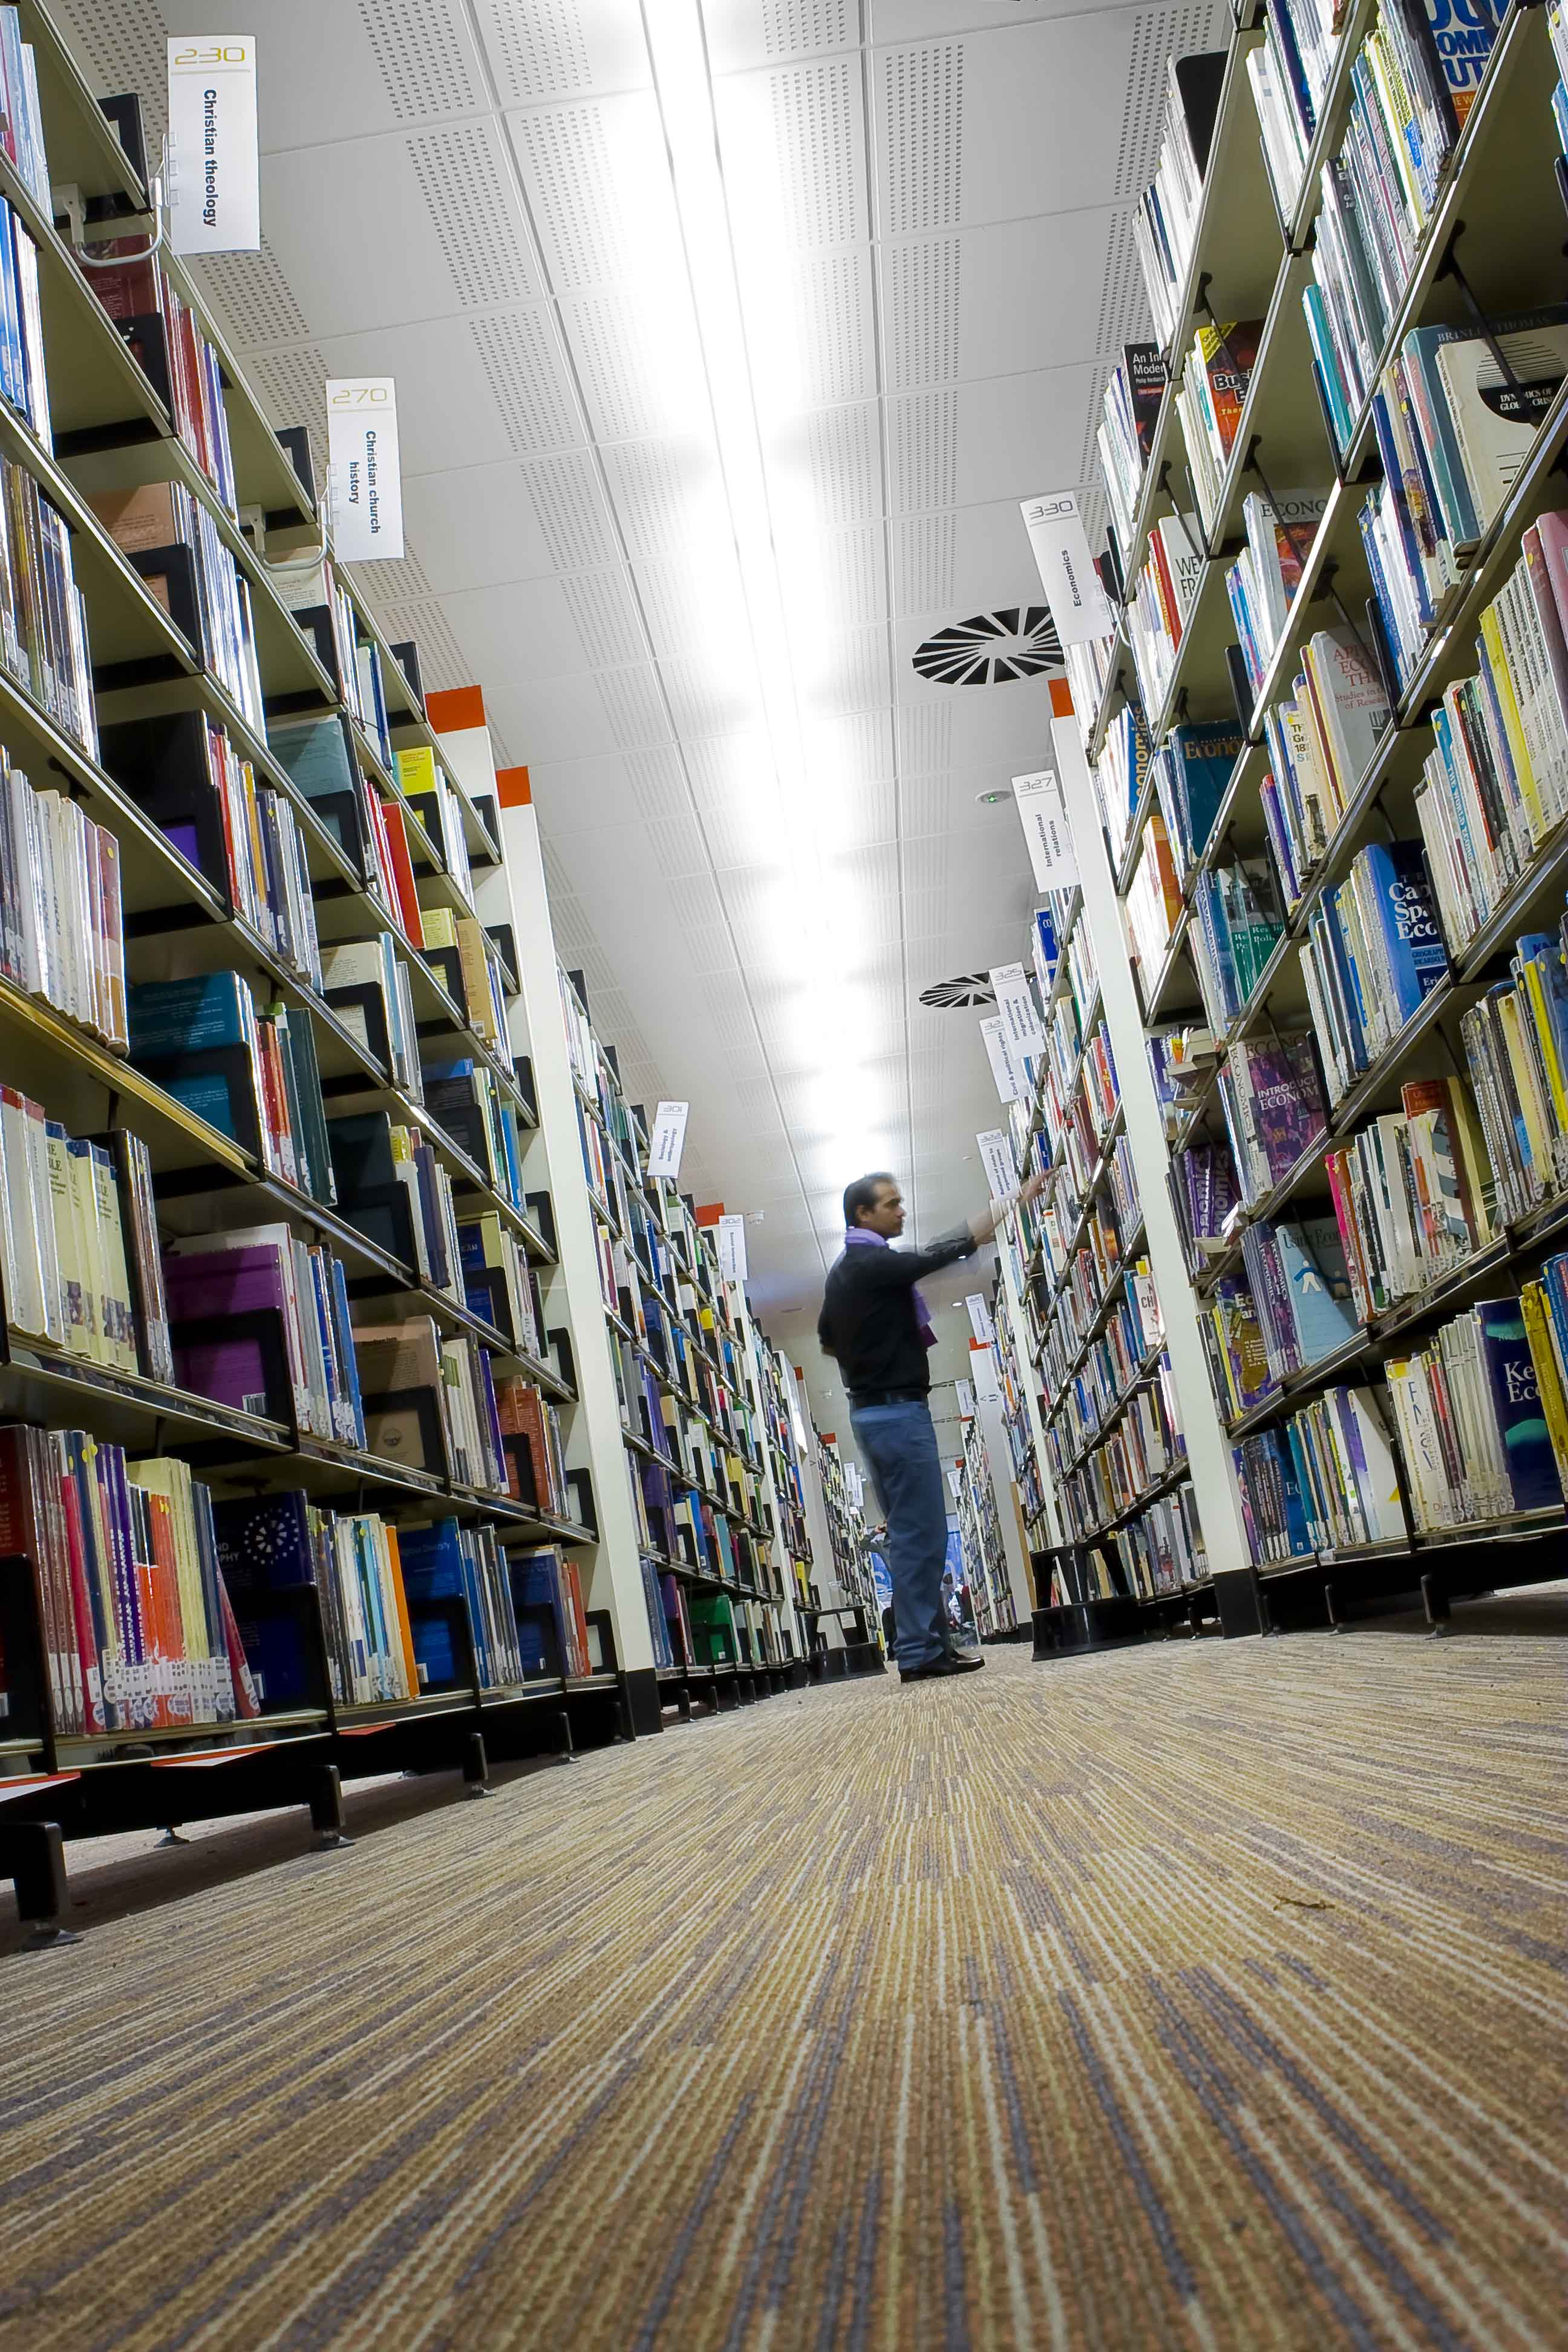 UCLan library - CLOK - Central Lancashire Online Knowledge